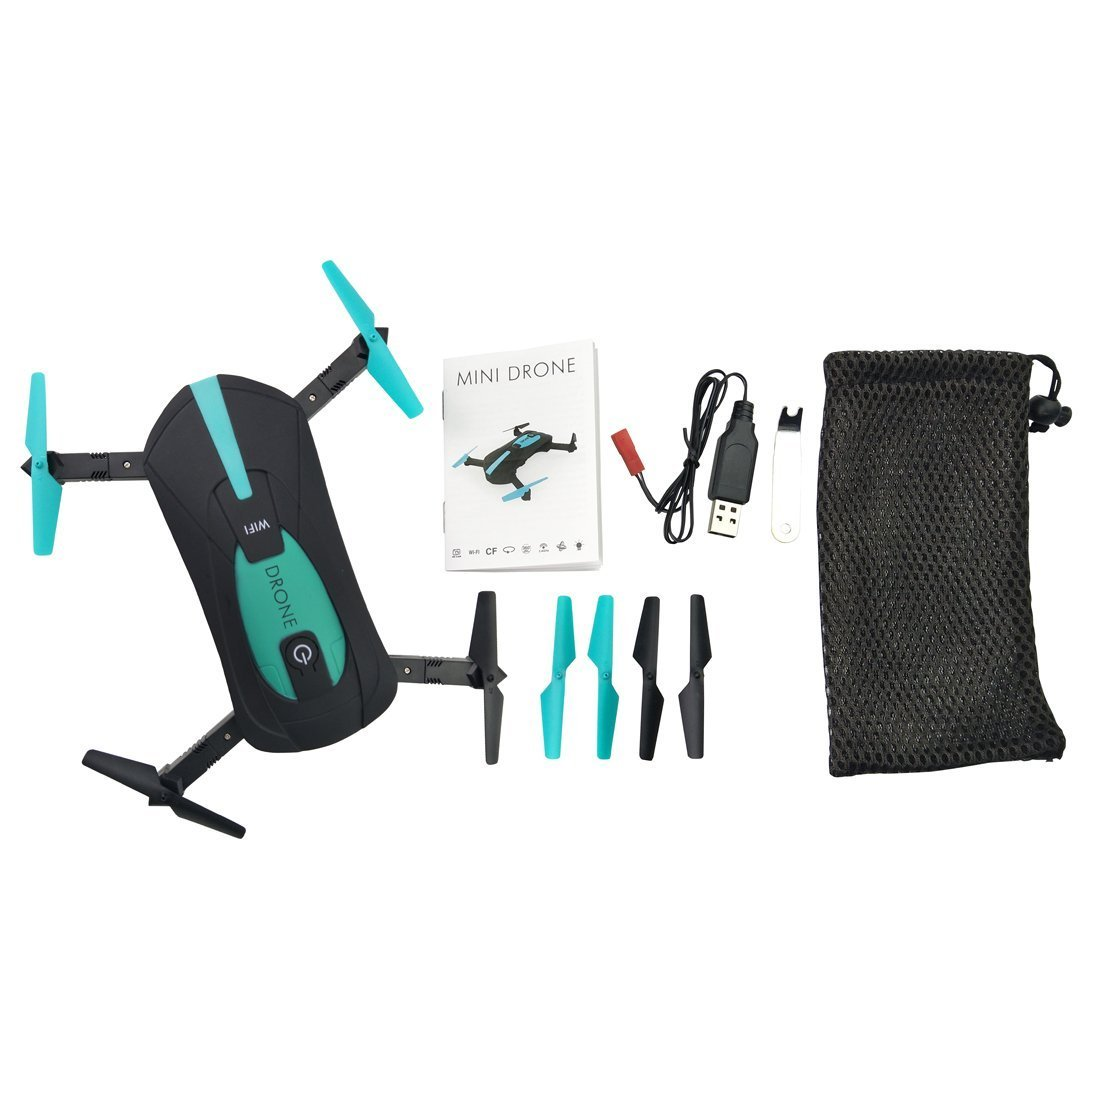 NiGHT LiONS TECH Upgraded version JY018 WIFI Quadcopter With Camera  Foldable Arm Altitude Hold RC Mini Quadcopter Selfie Pocket Drone RTF  (Green)